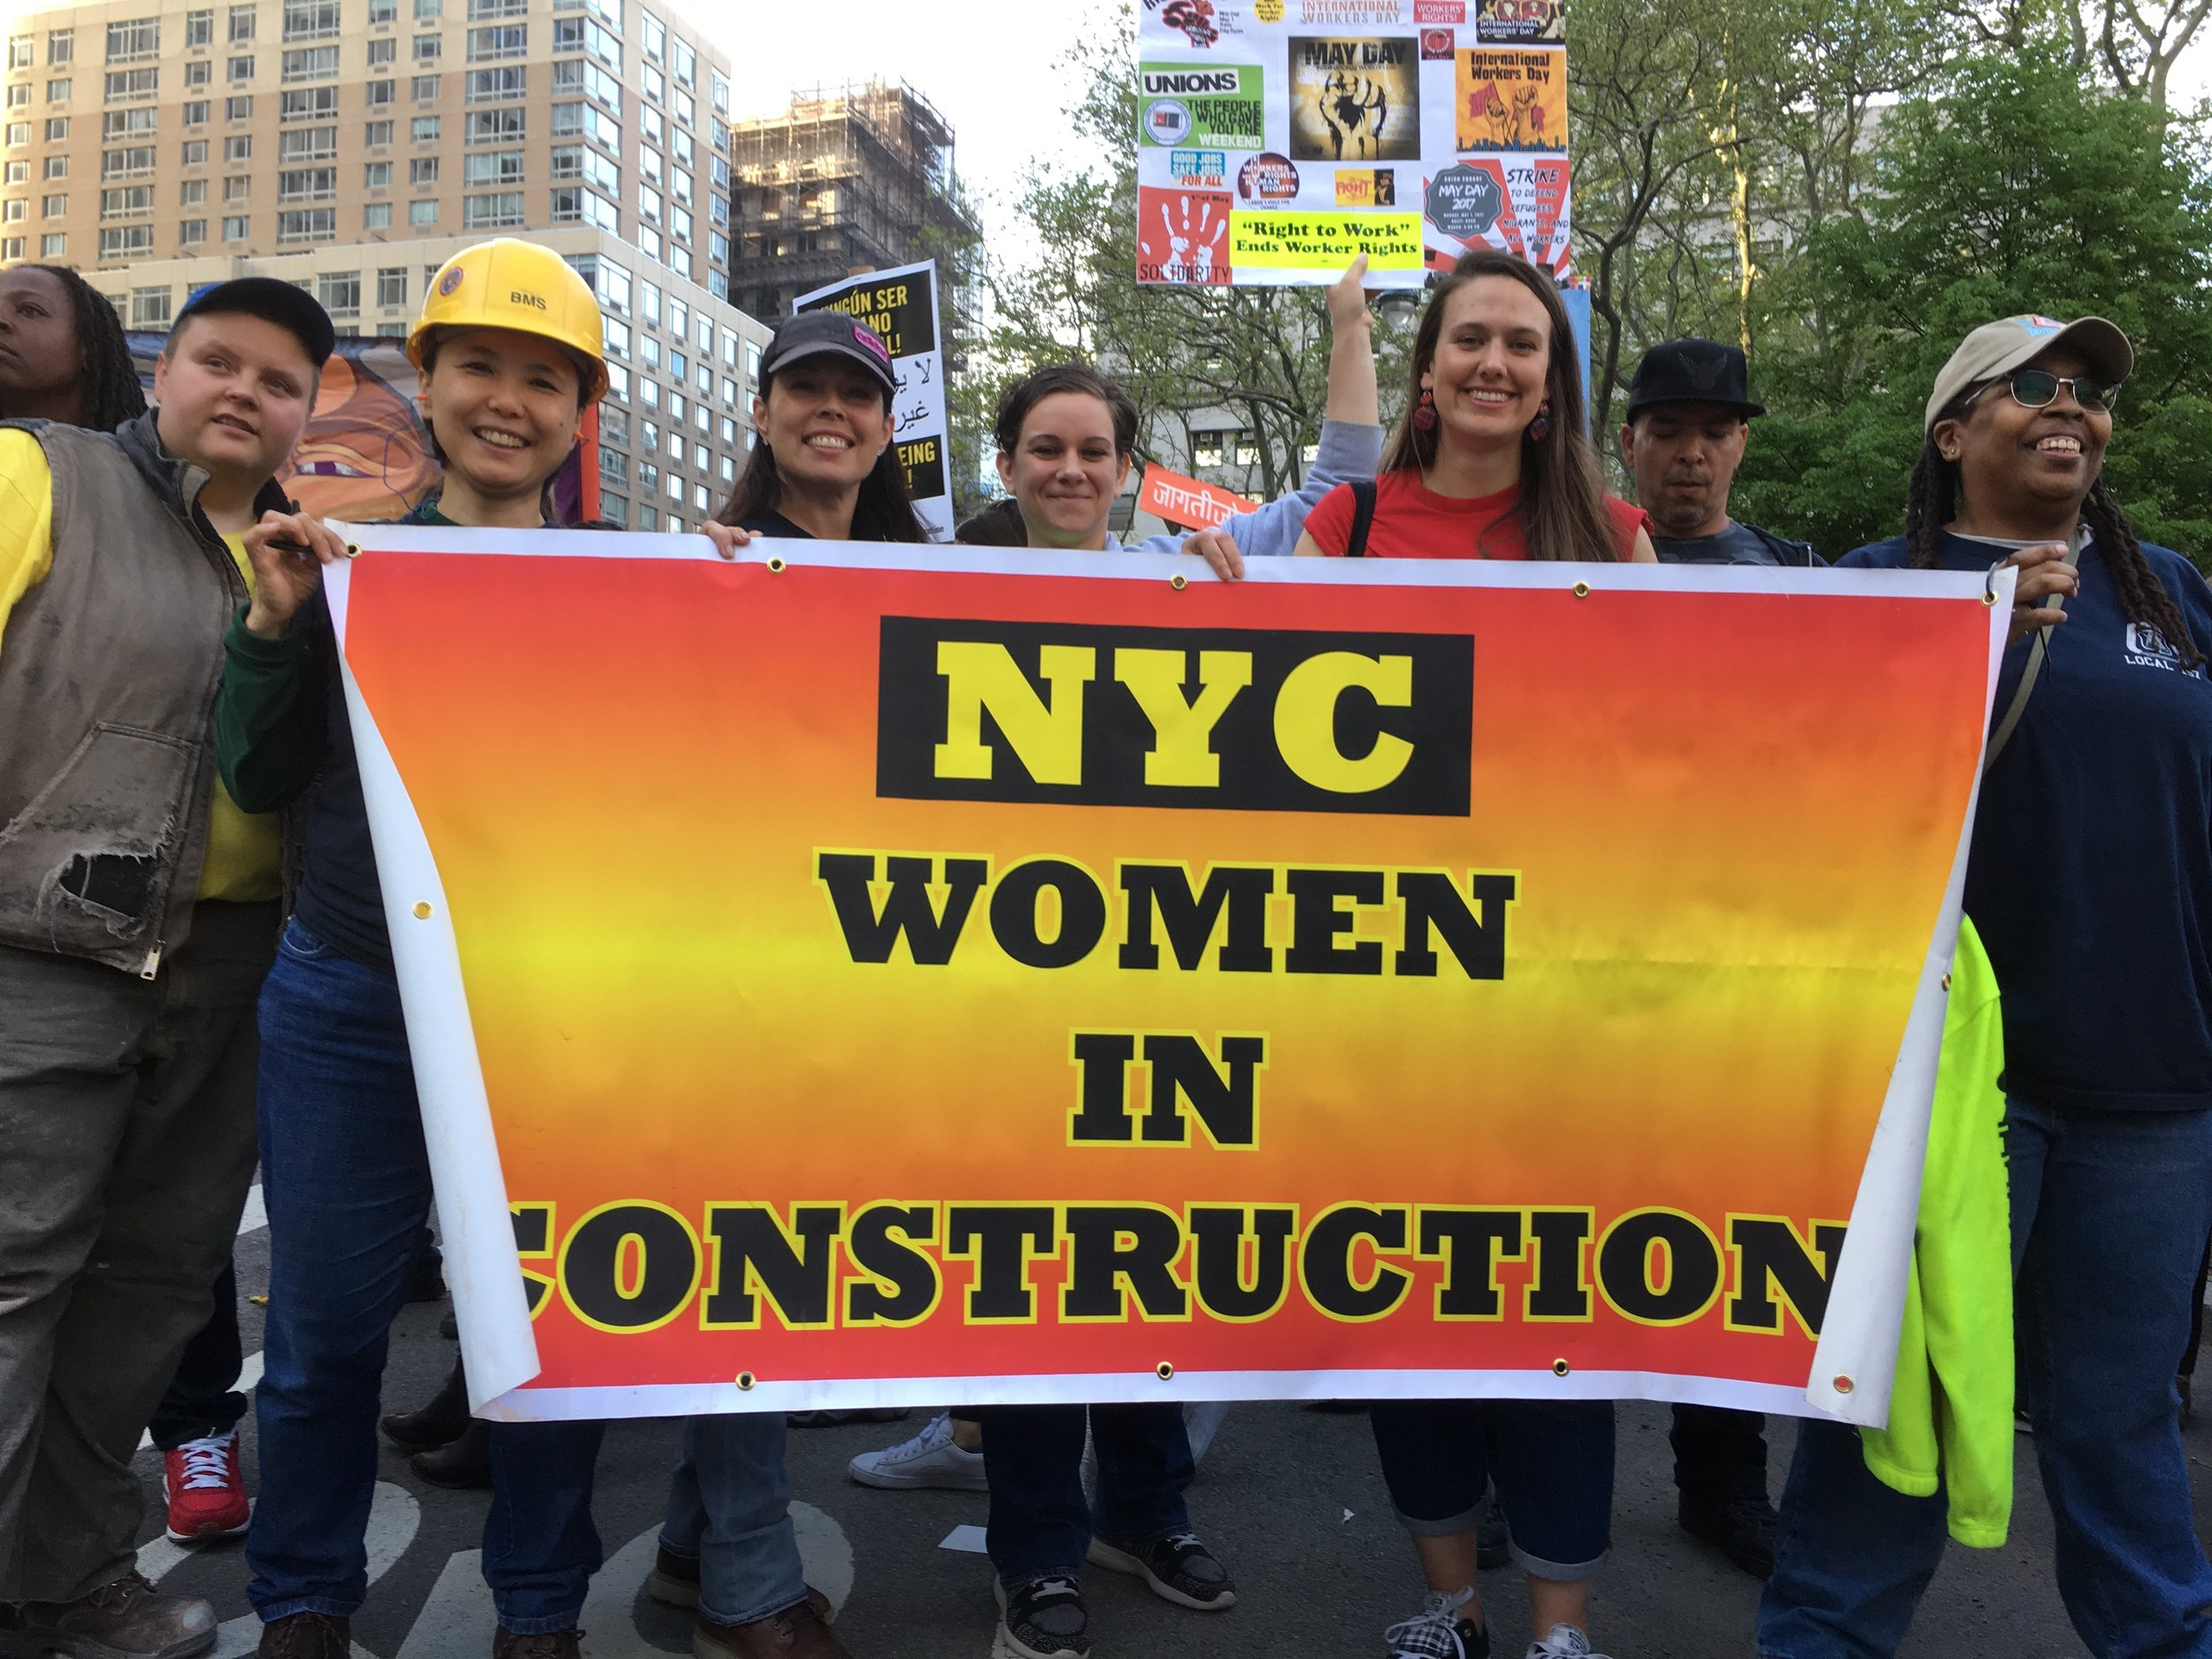 NYCCWC Banner - May Day March 5-1-17.jpg